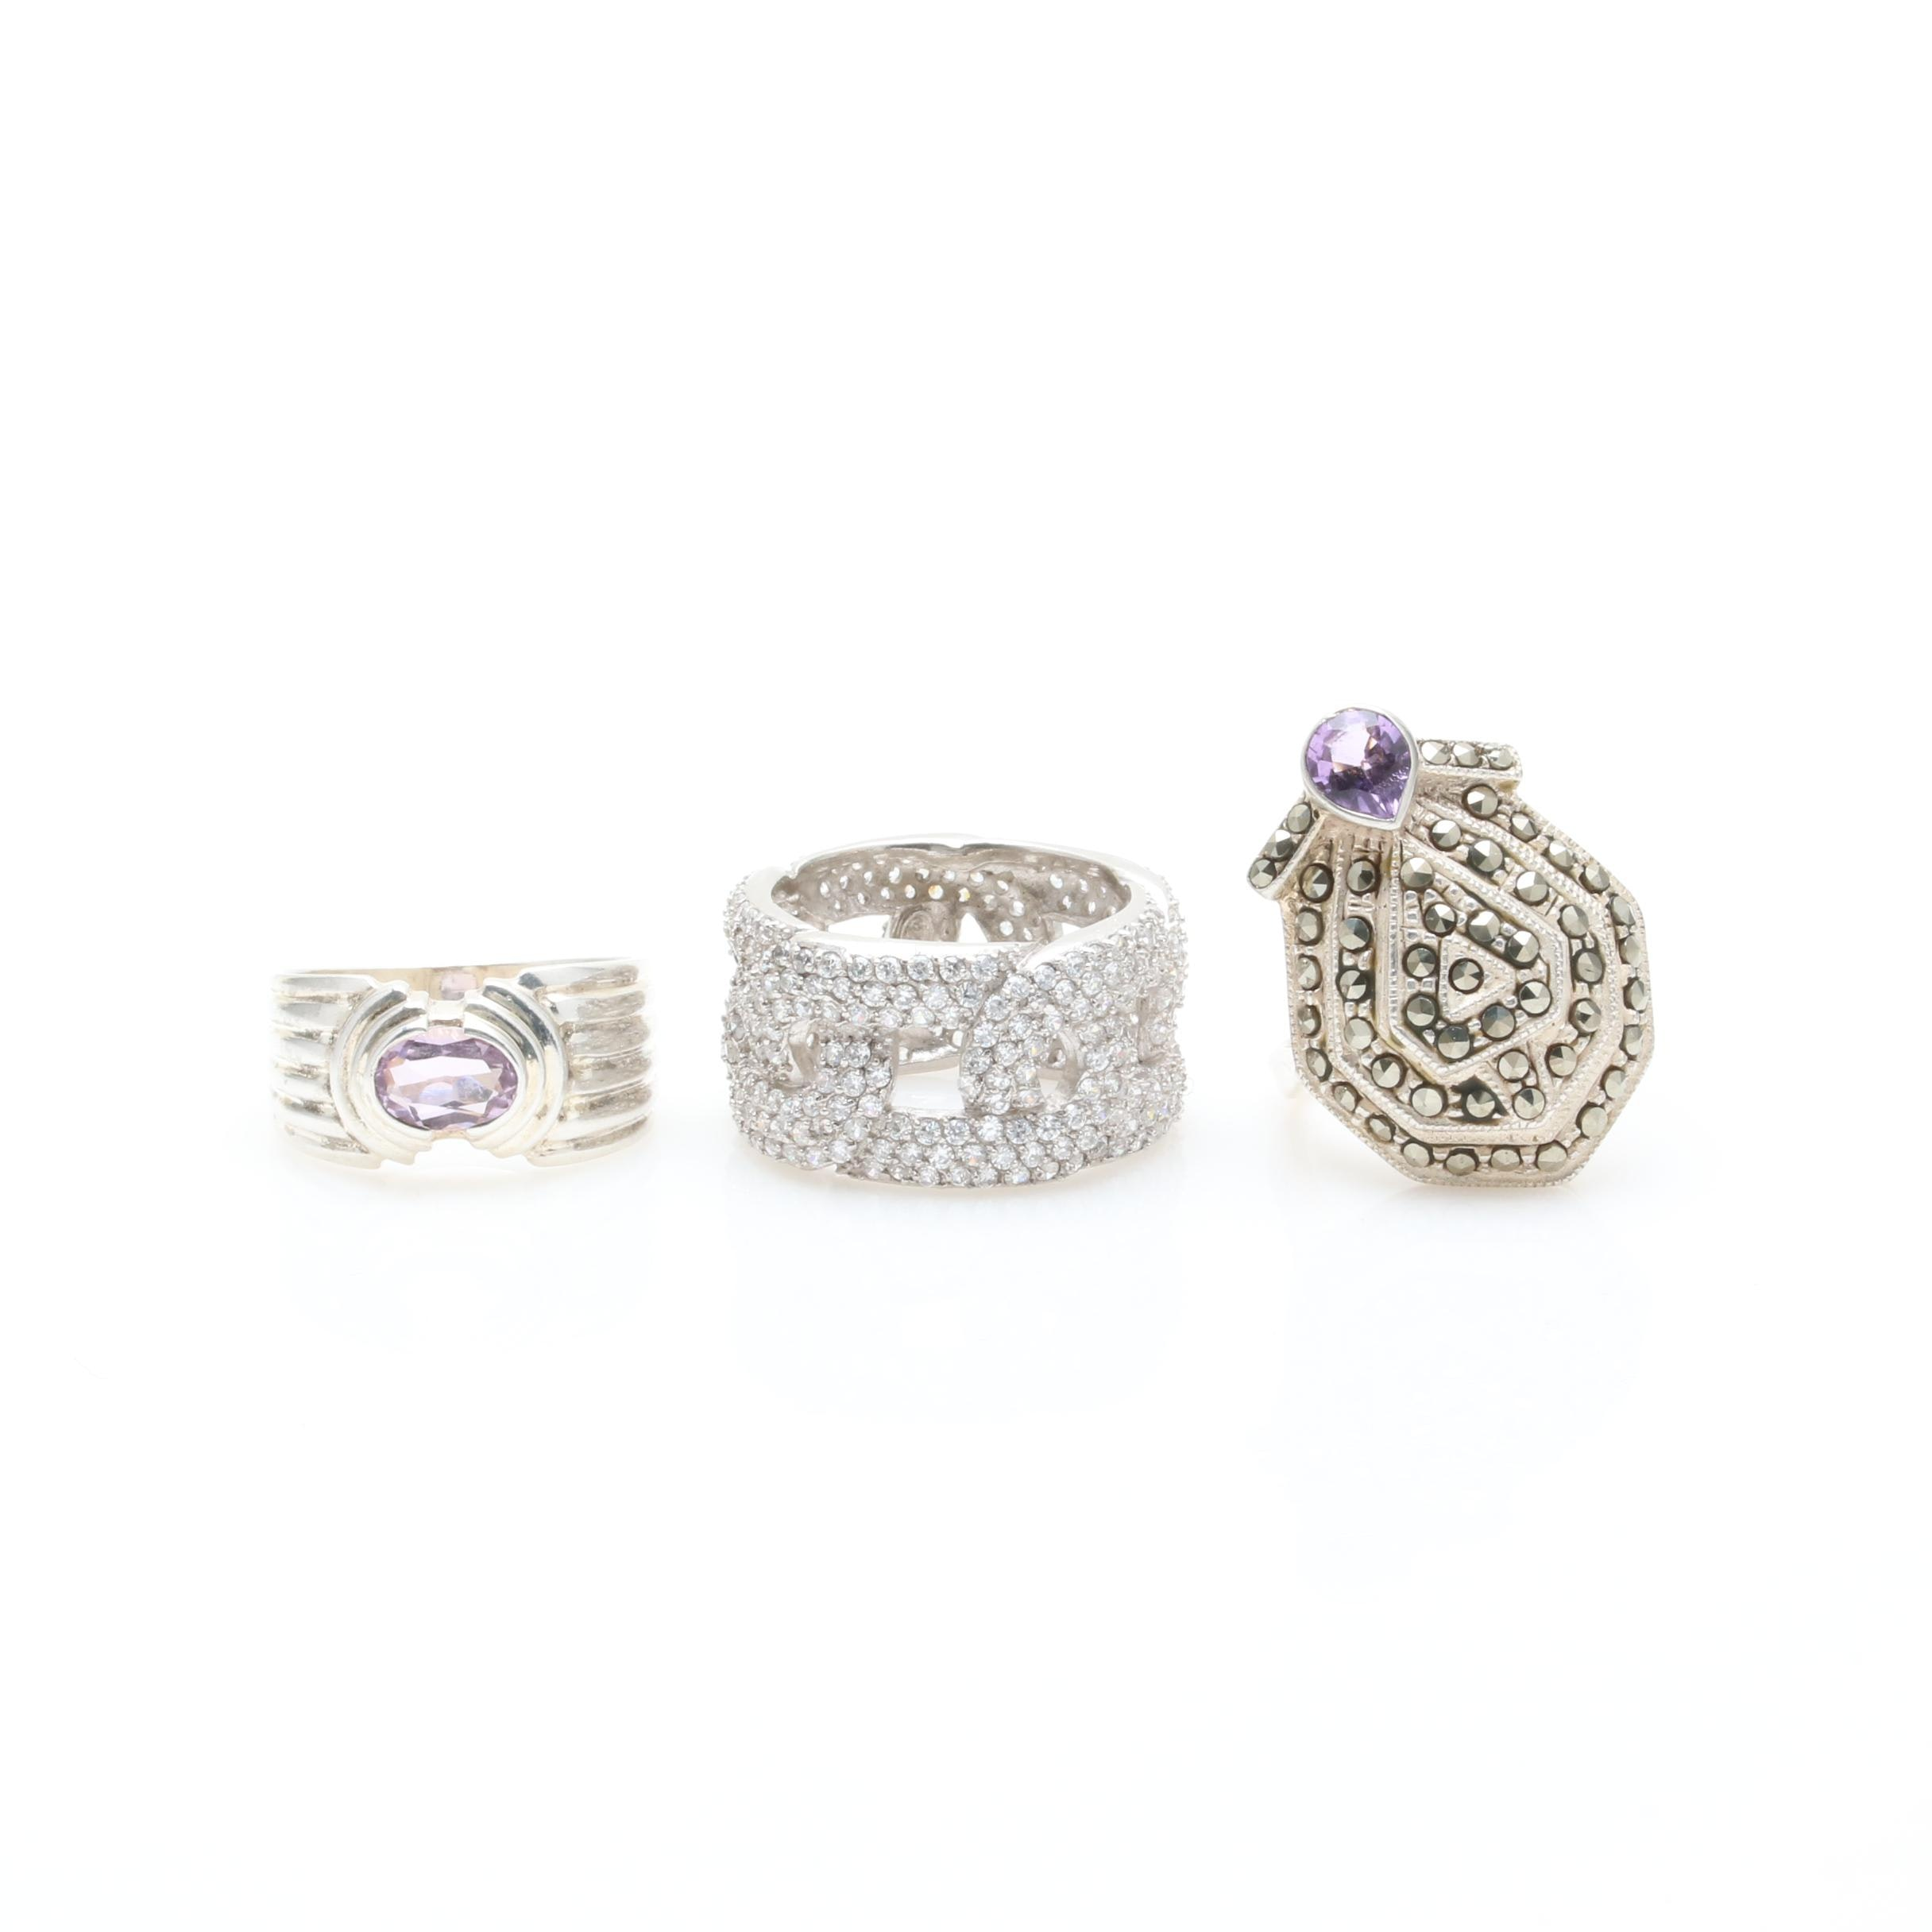 Sterling Silver Ring Assortment Including Amethyst and Cubic Zirconia